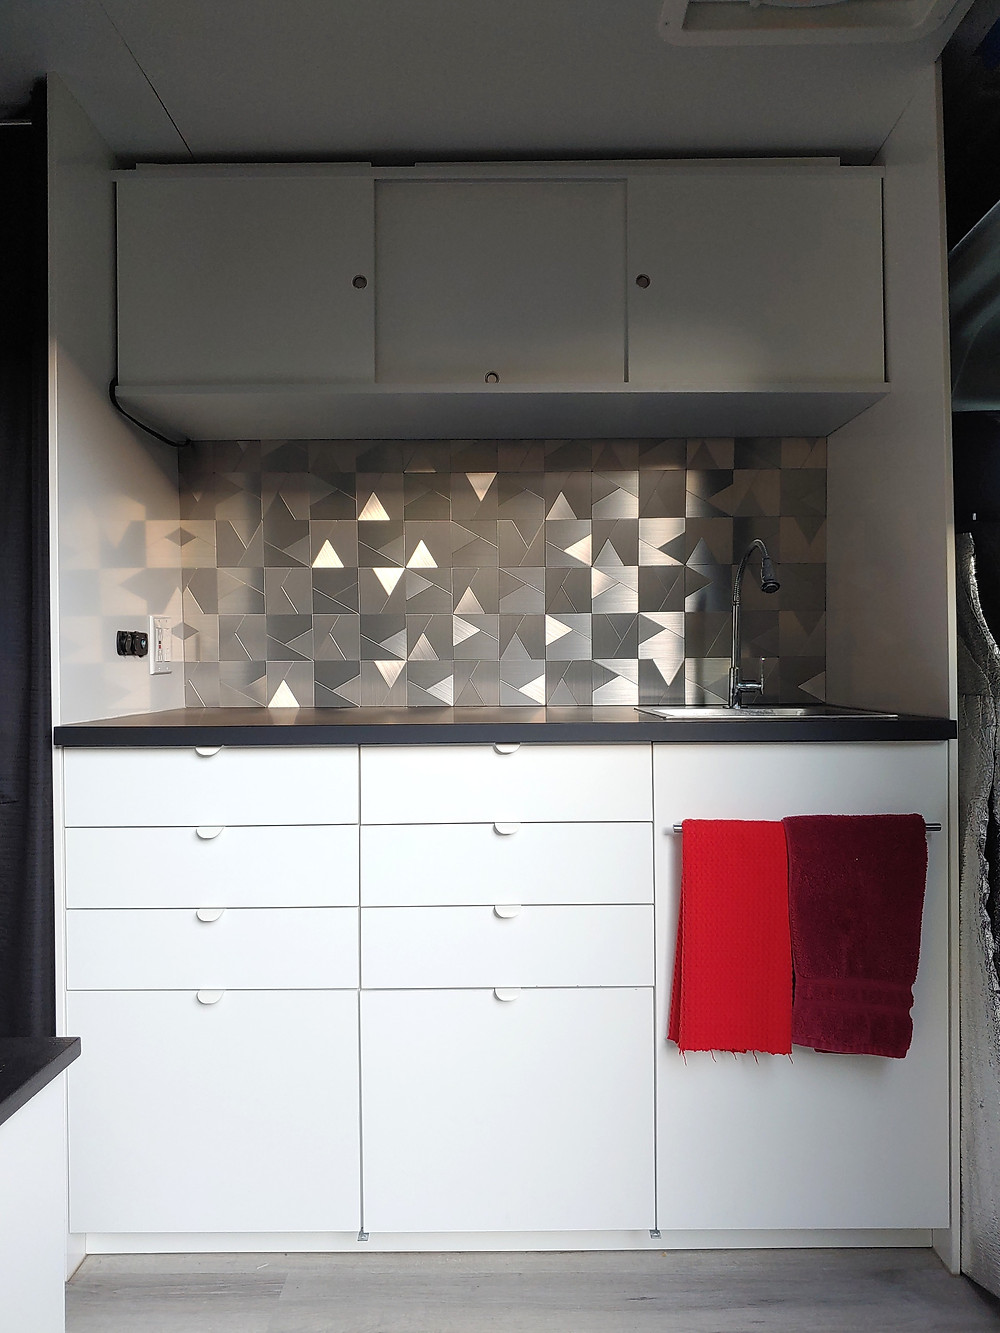 Our kitchen design with Ikea base cabinets and custom built upper cabinets. I love our back splash!